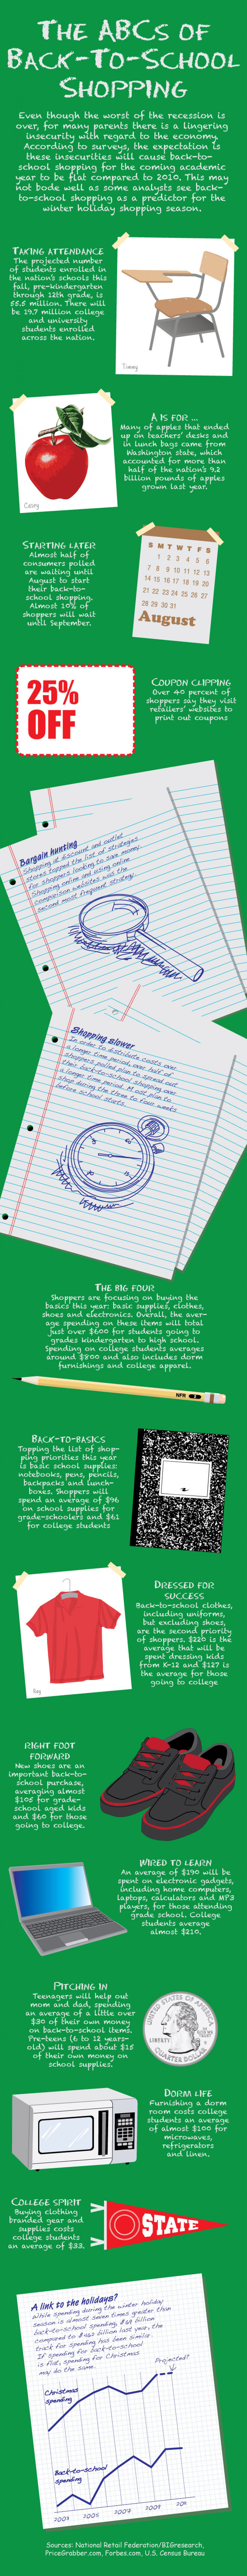 The ABCs Of Back-To-School Shopping Infographic